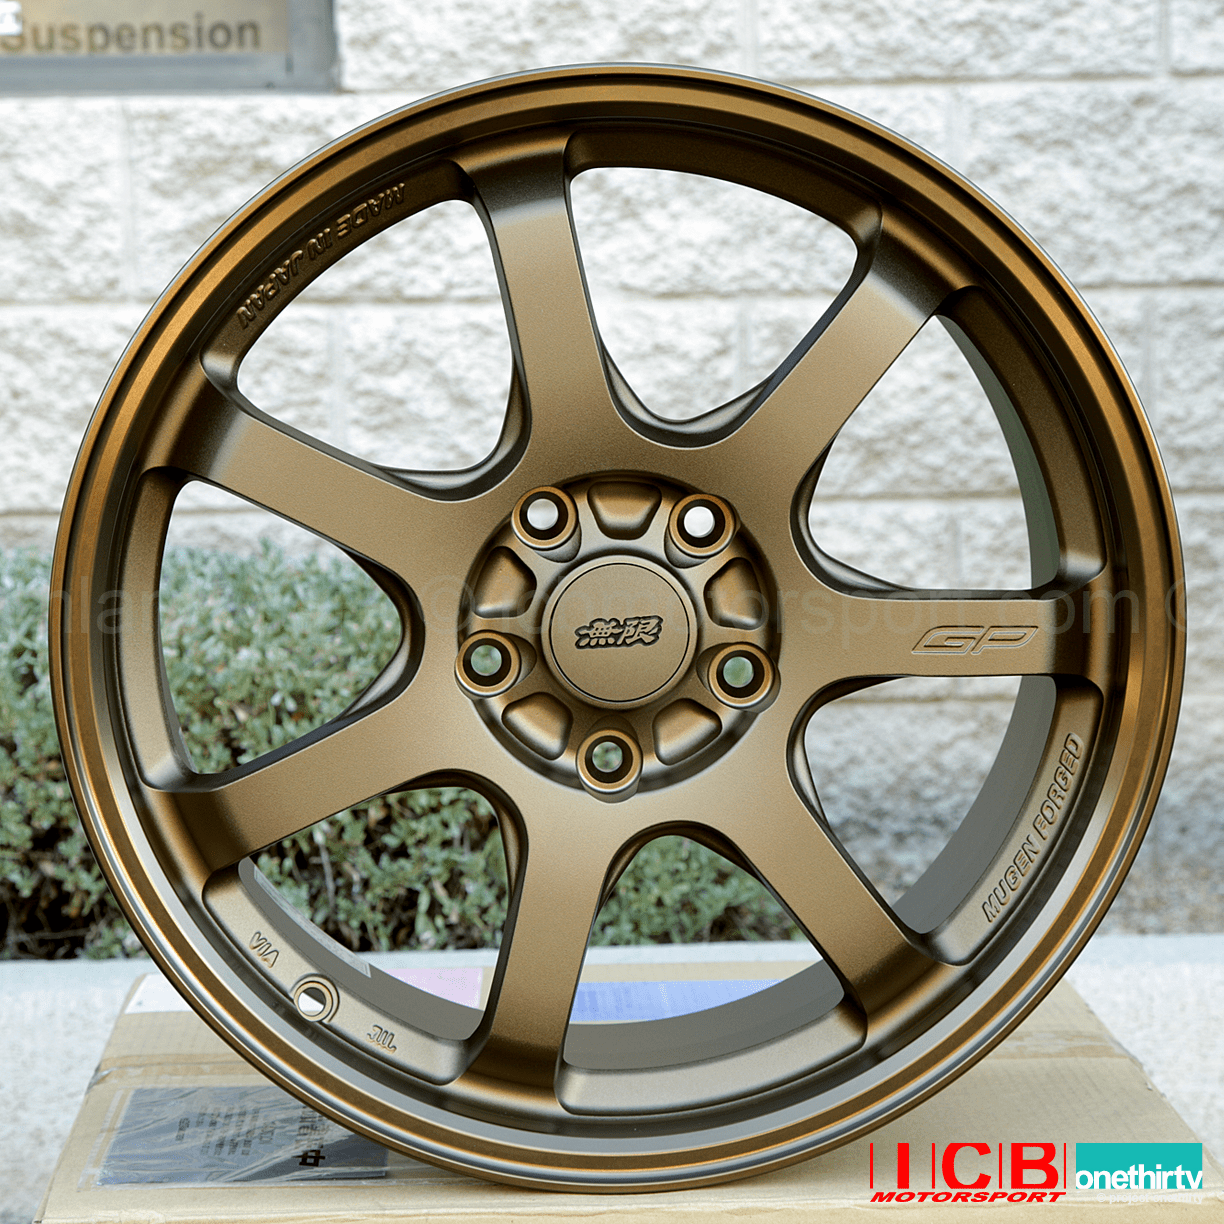 Mugen GP Forged Wheel Bronze Finish Honda S2000 AP1/AP2 17X7.5 +52 Offset 17X8.5 +59 Offset